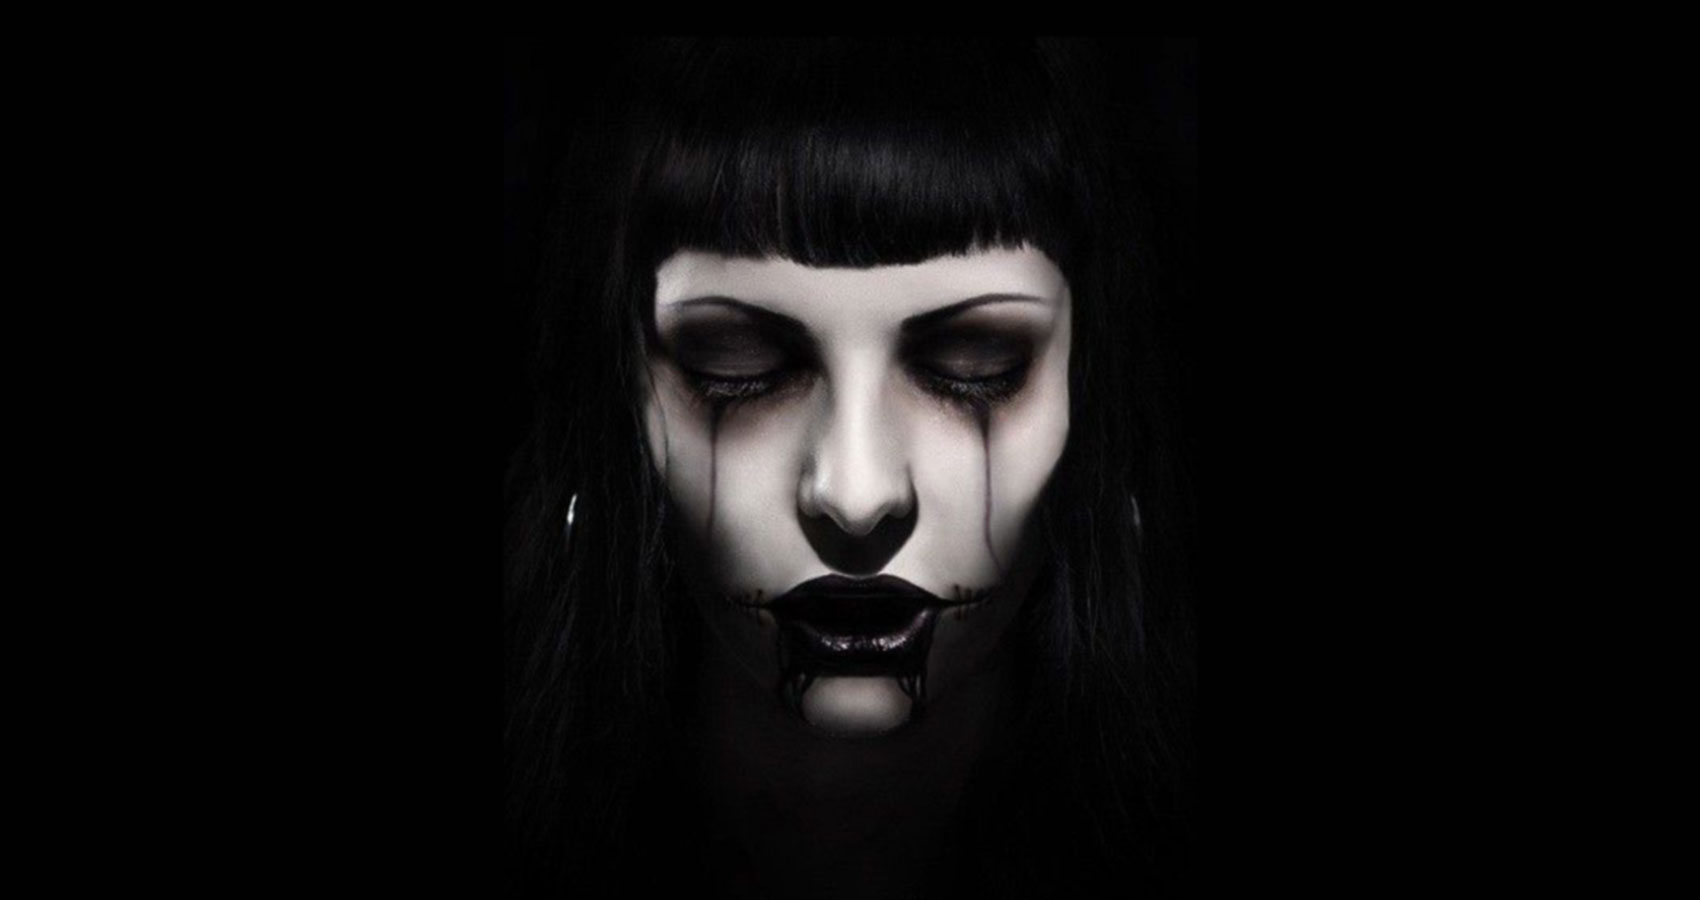 Black Tears written by Fallen Engel at Spillwords.com